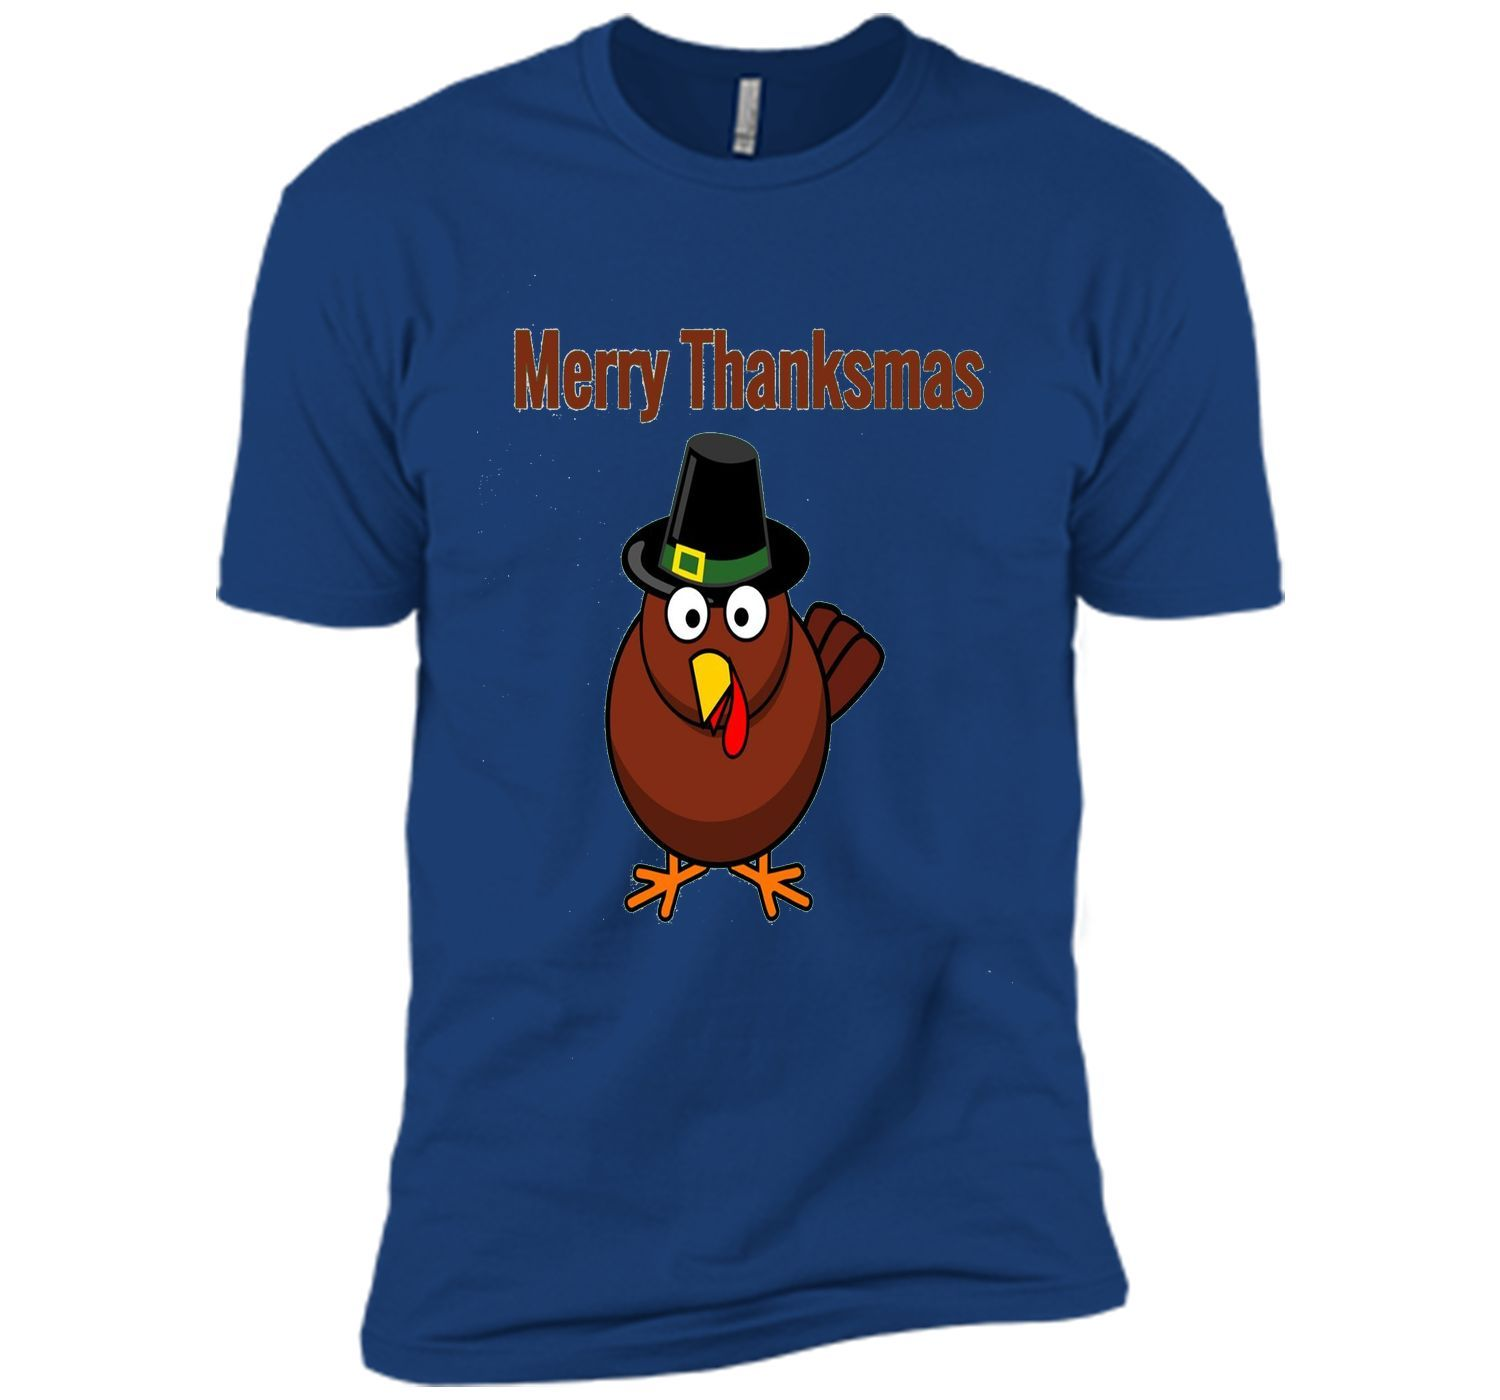 Merry Thanksmas Turkey Tshirt Limited Edition